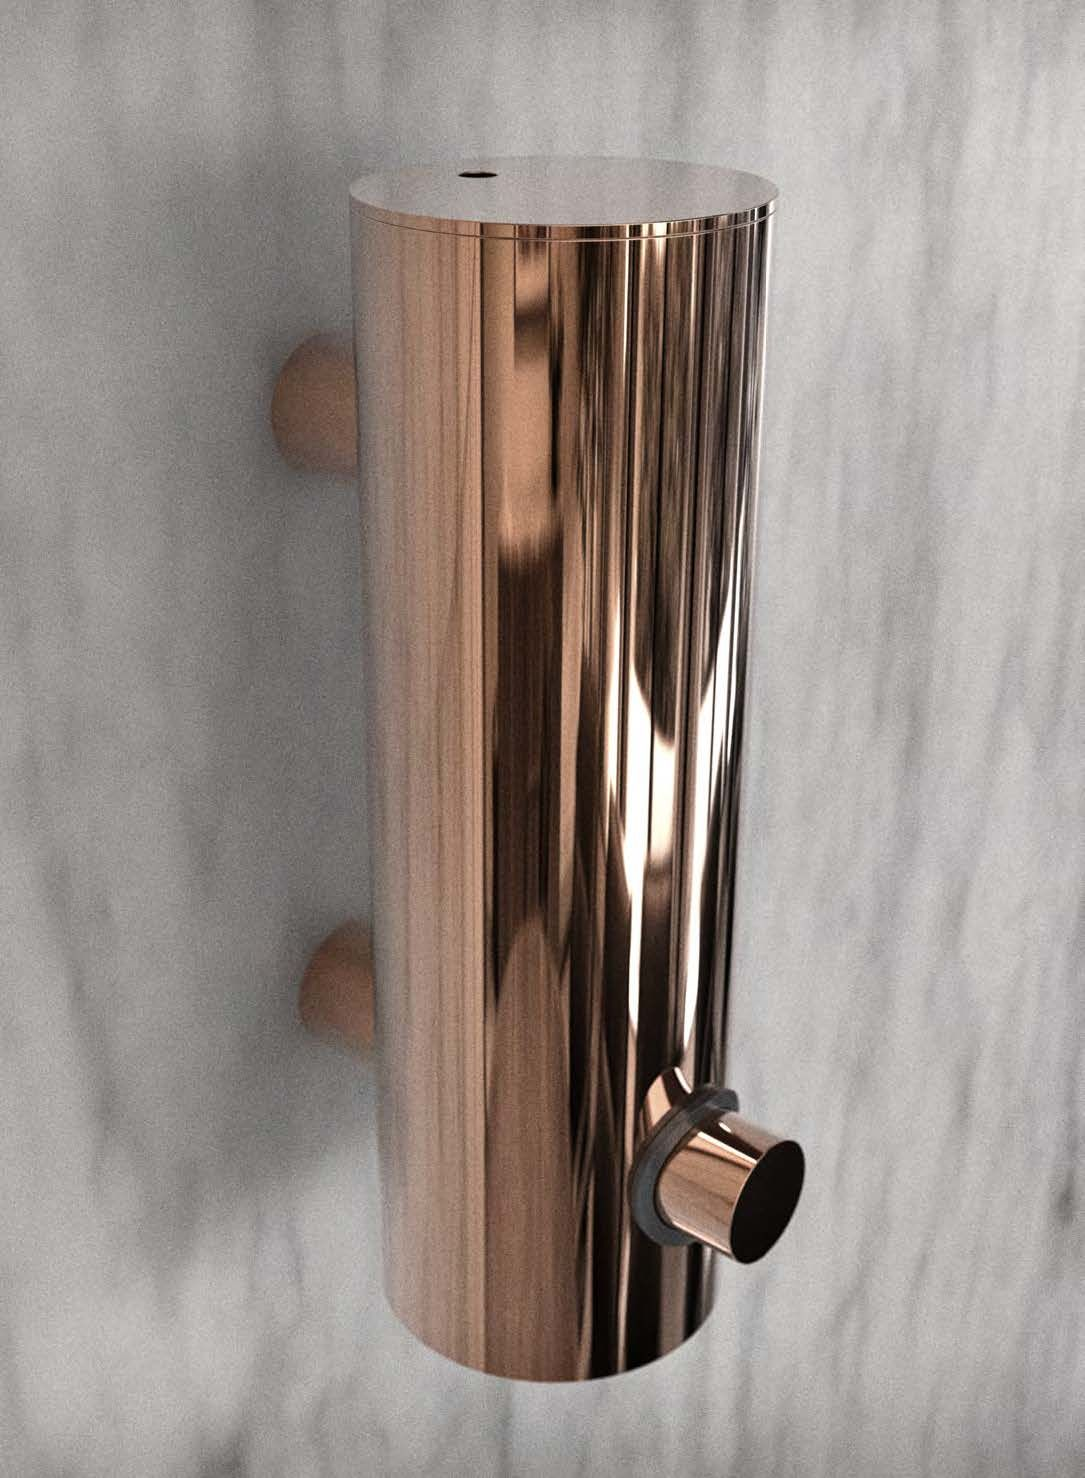 Wall Hung Soap Dispenser With Images